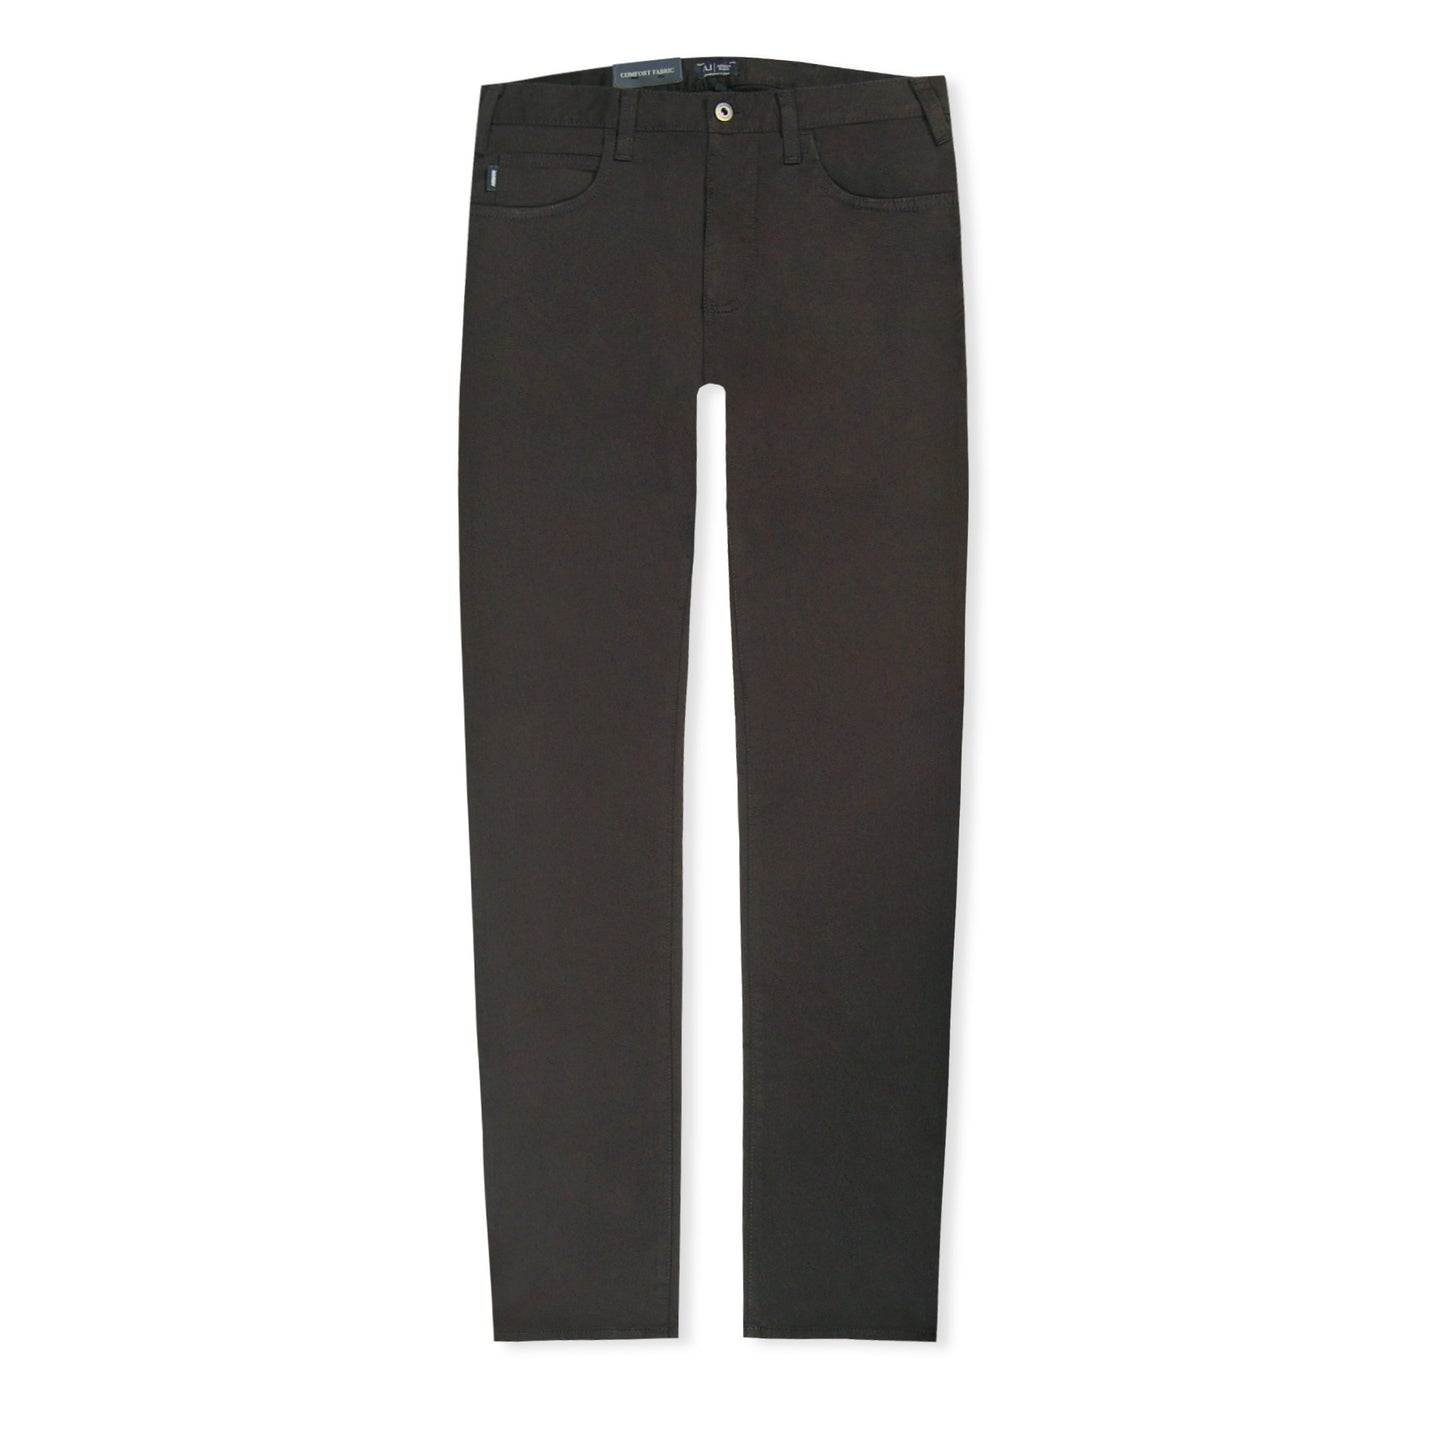 Black J45 Regular/Slim Canvas Chino's